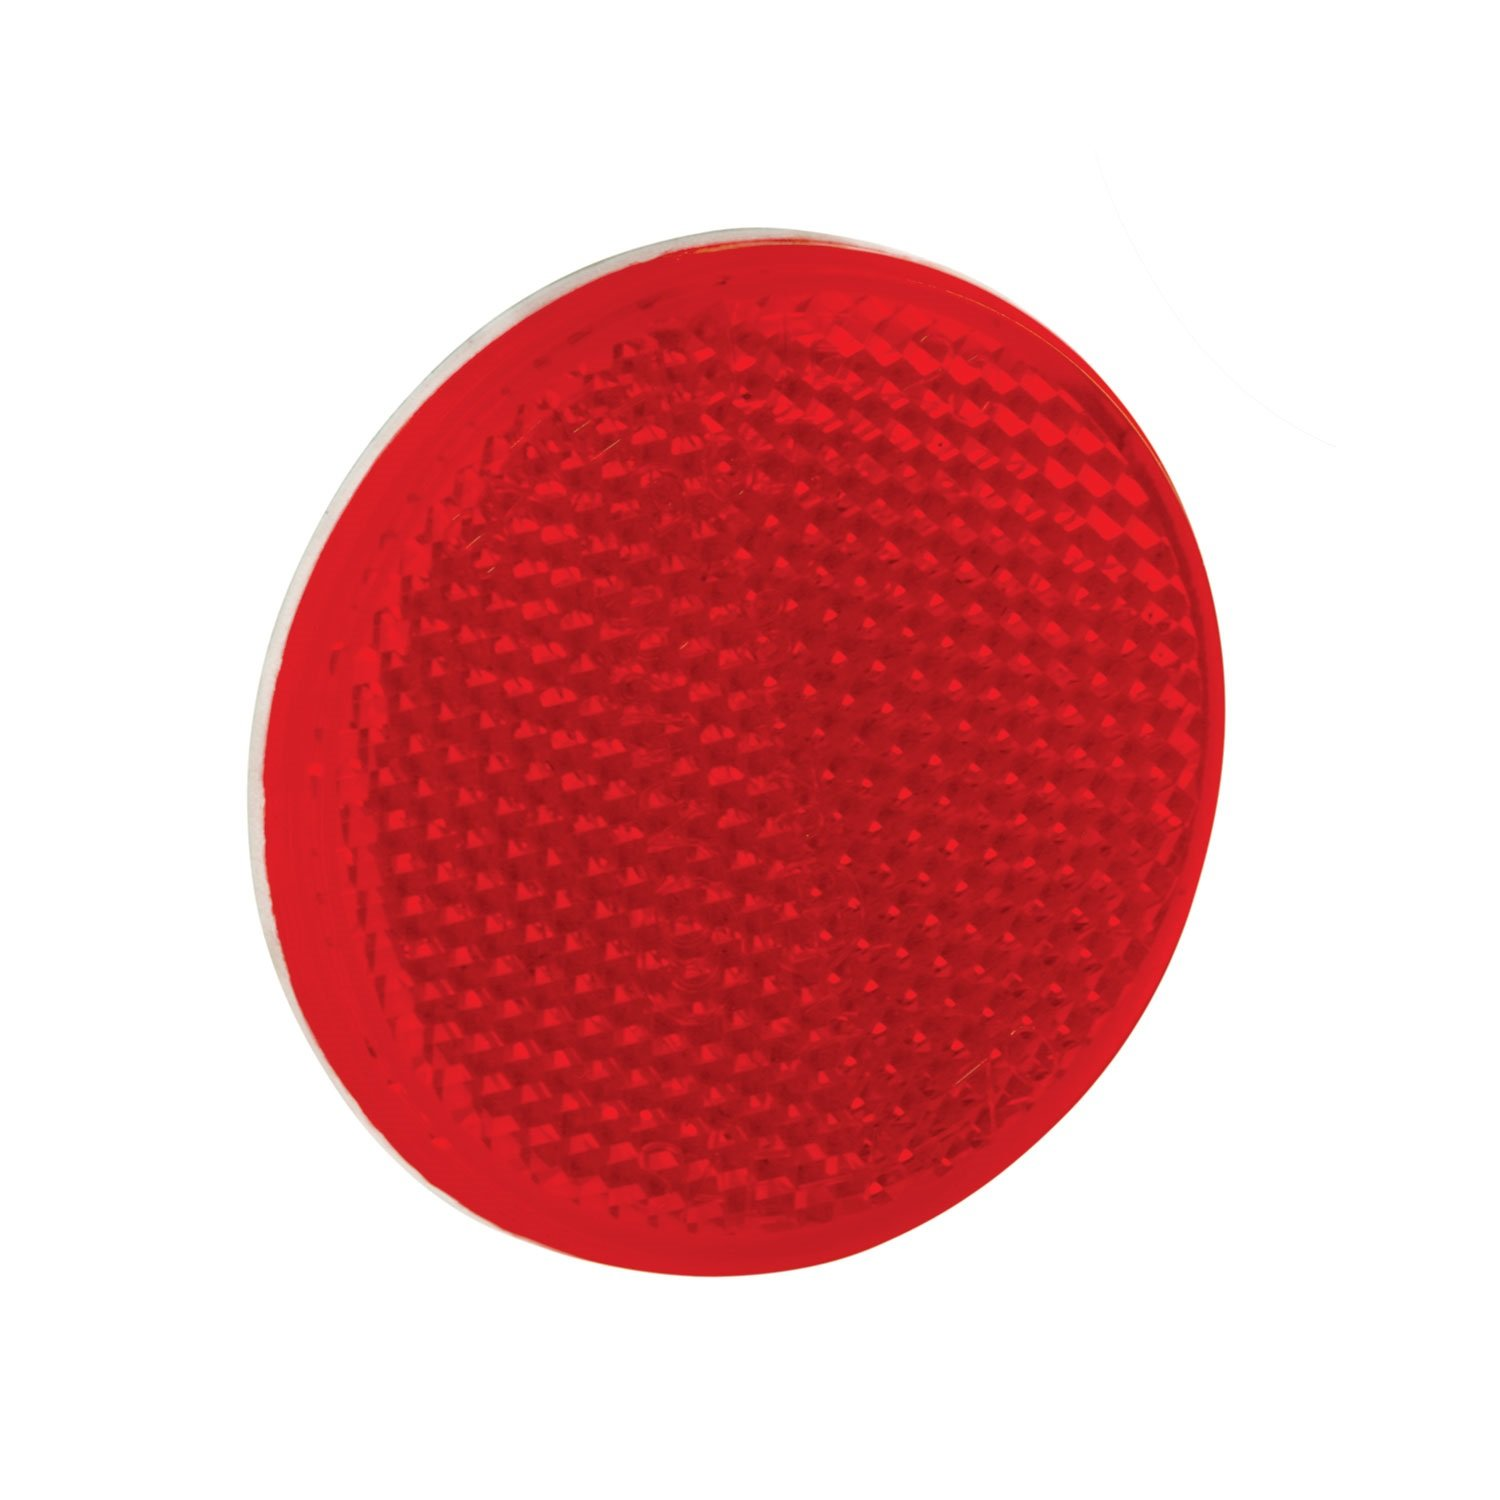 2-3//16 Bargman 70-55-010 Reflector with Adhesive Mount Round Red 2-3//16